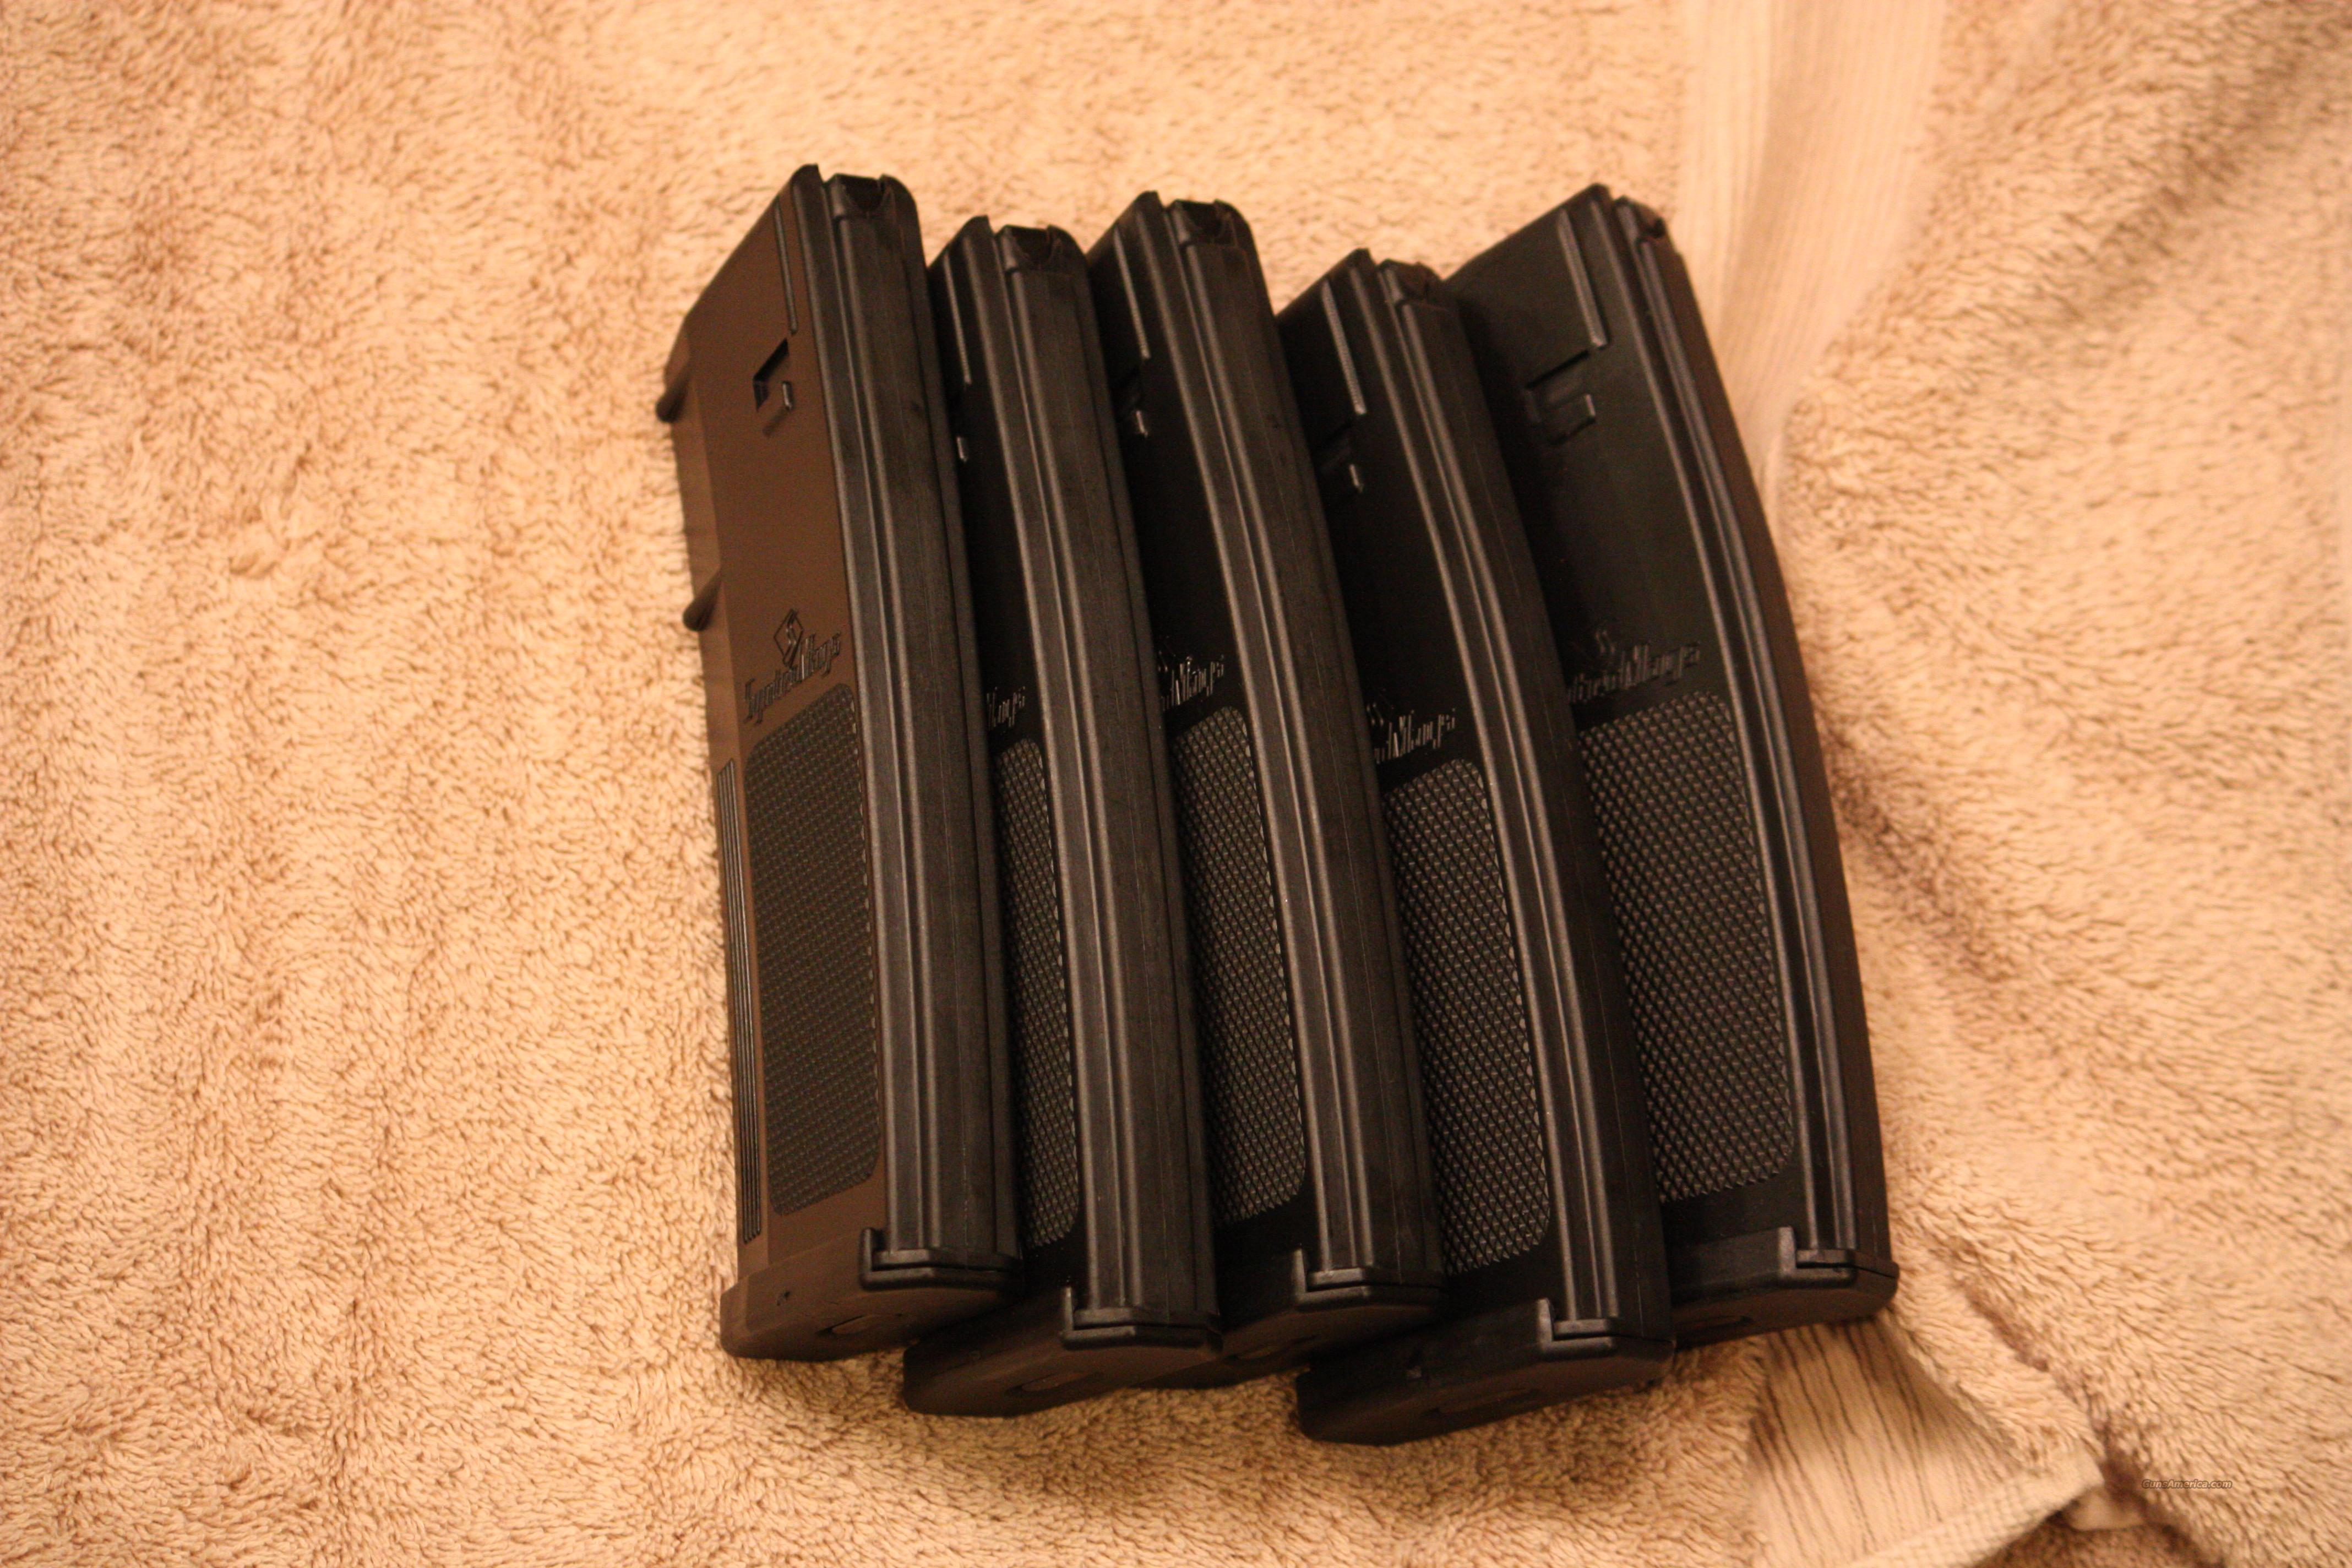 5 New AR-15 30rd Magazine clips, Not Magpul  Non-Guns > Magazines & Clips > Rifle Magazines > AR-15 Type